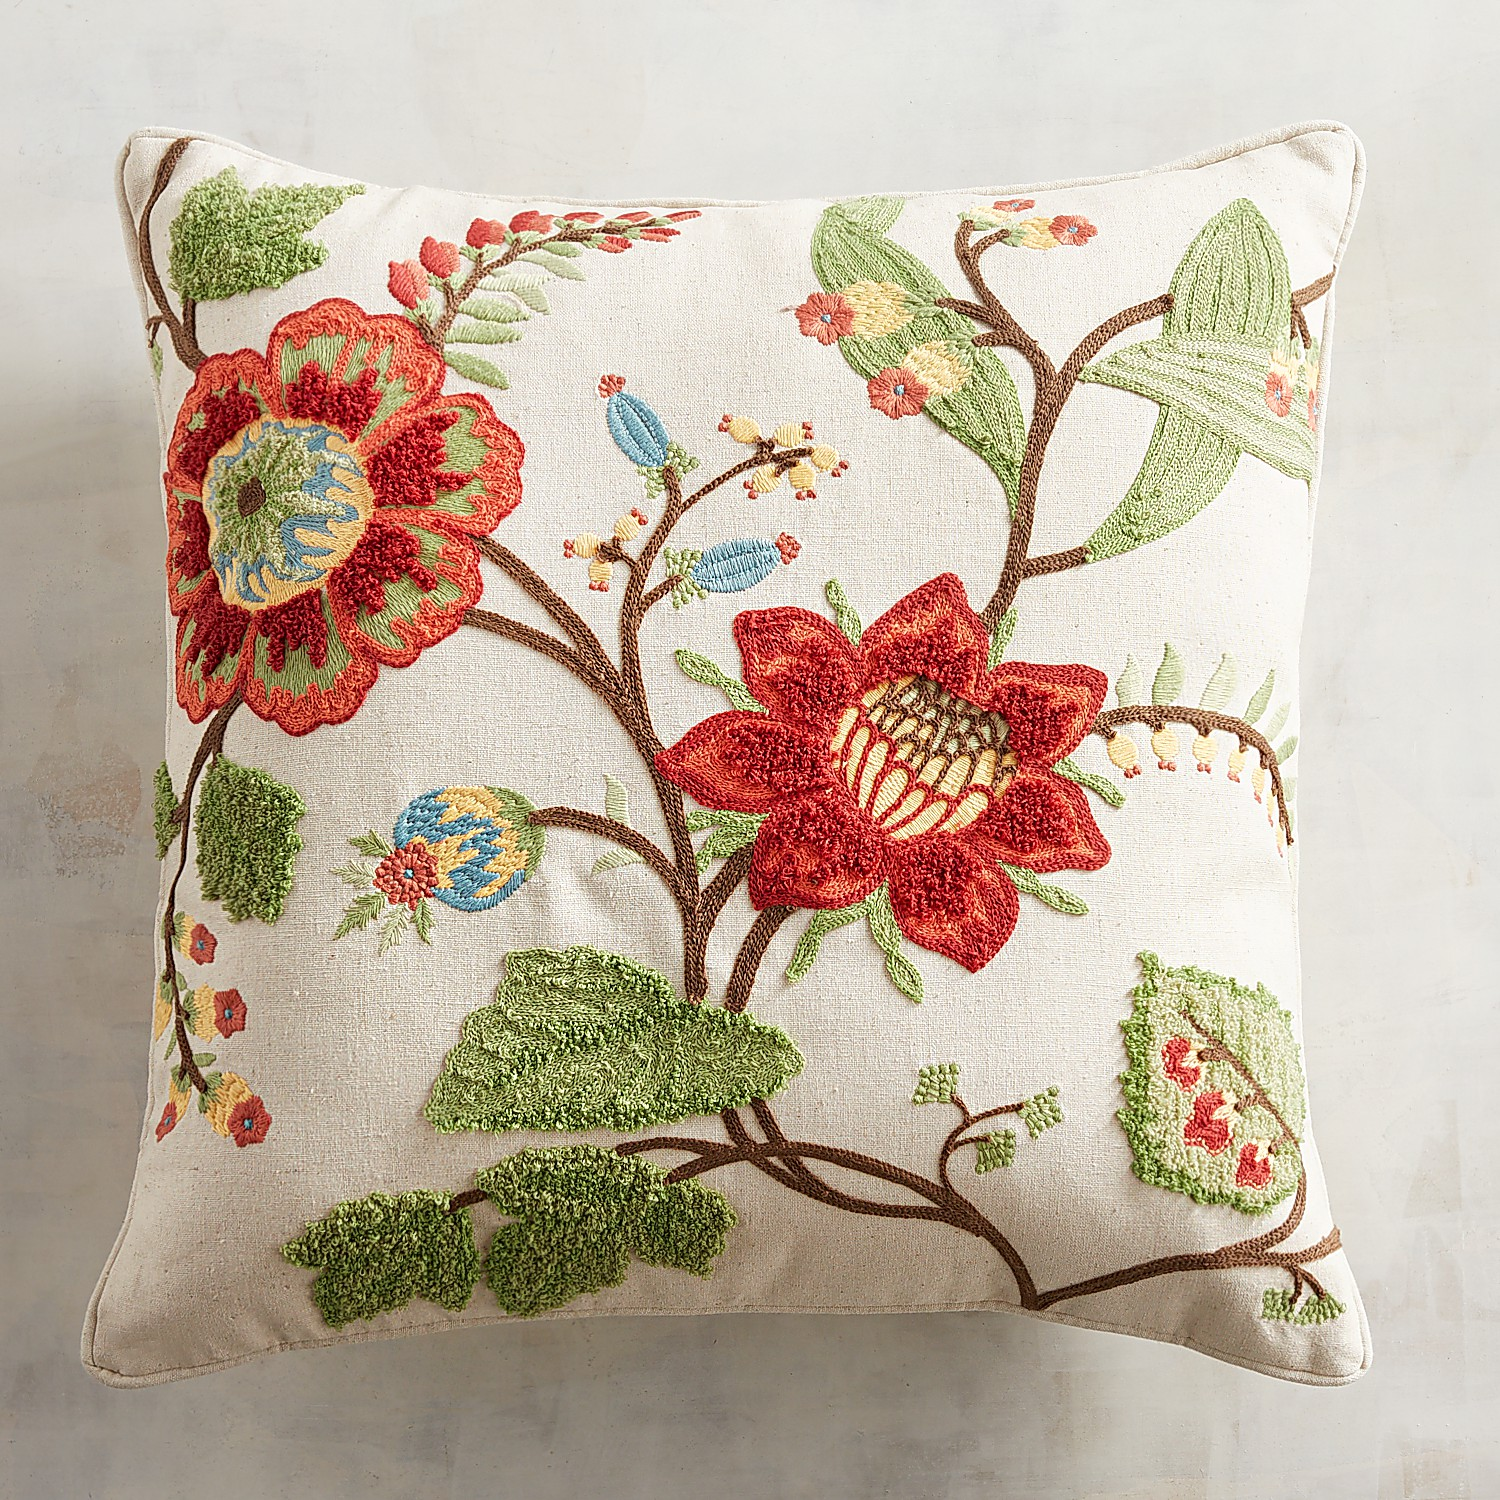 Embroidered Multifloral Harvest Pillow